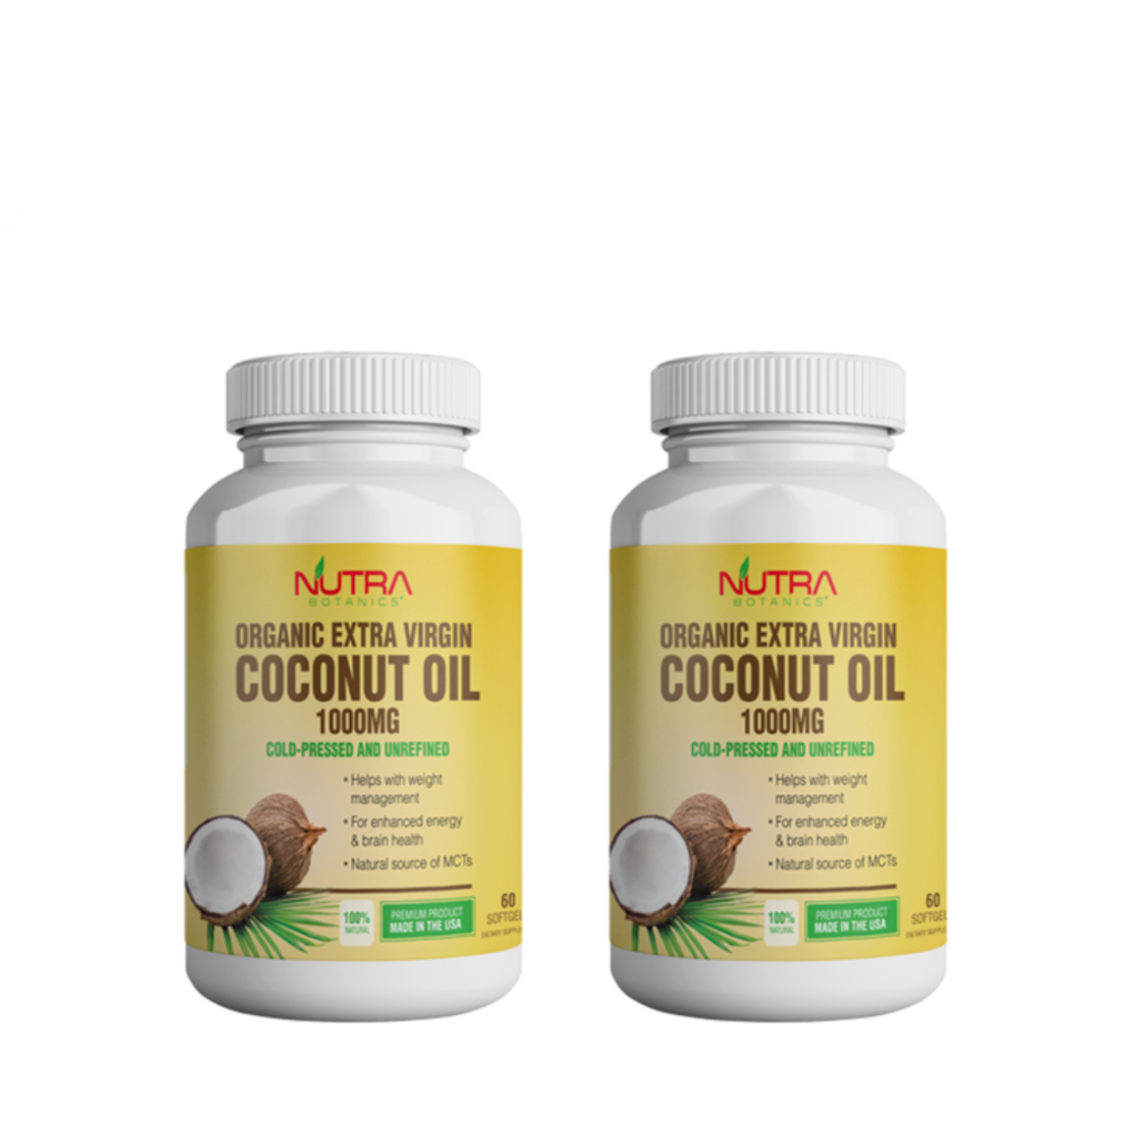 Organic Extra Virgin Coconut Oil 1000Mg 2 X 60s Twin Pack